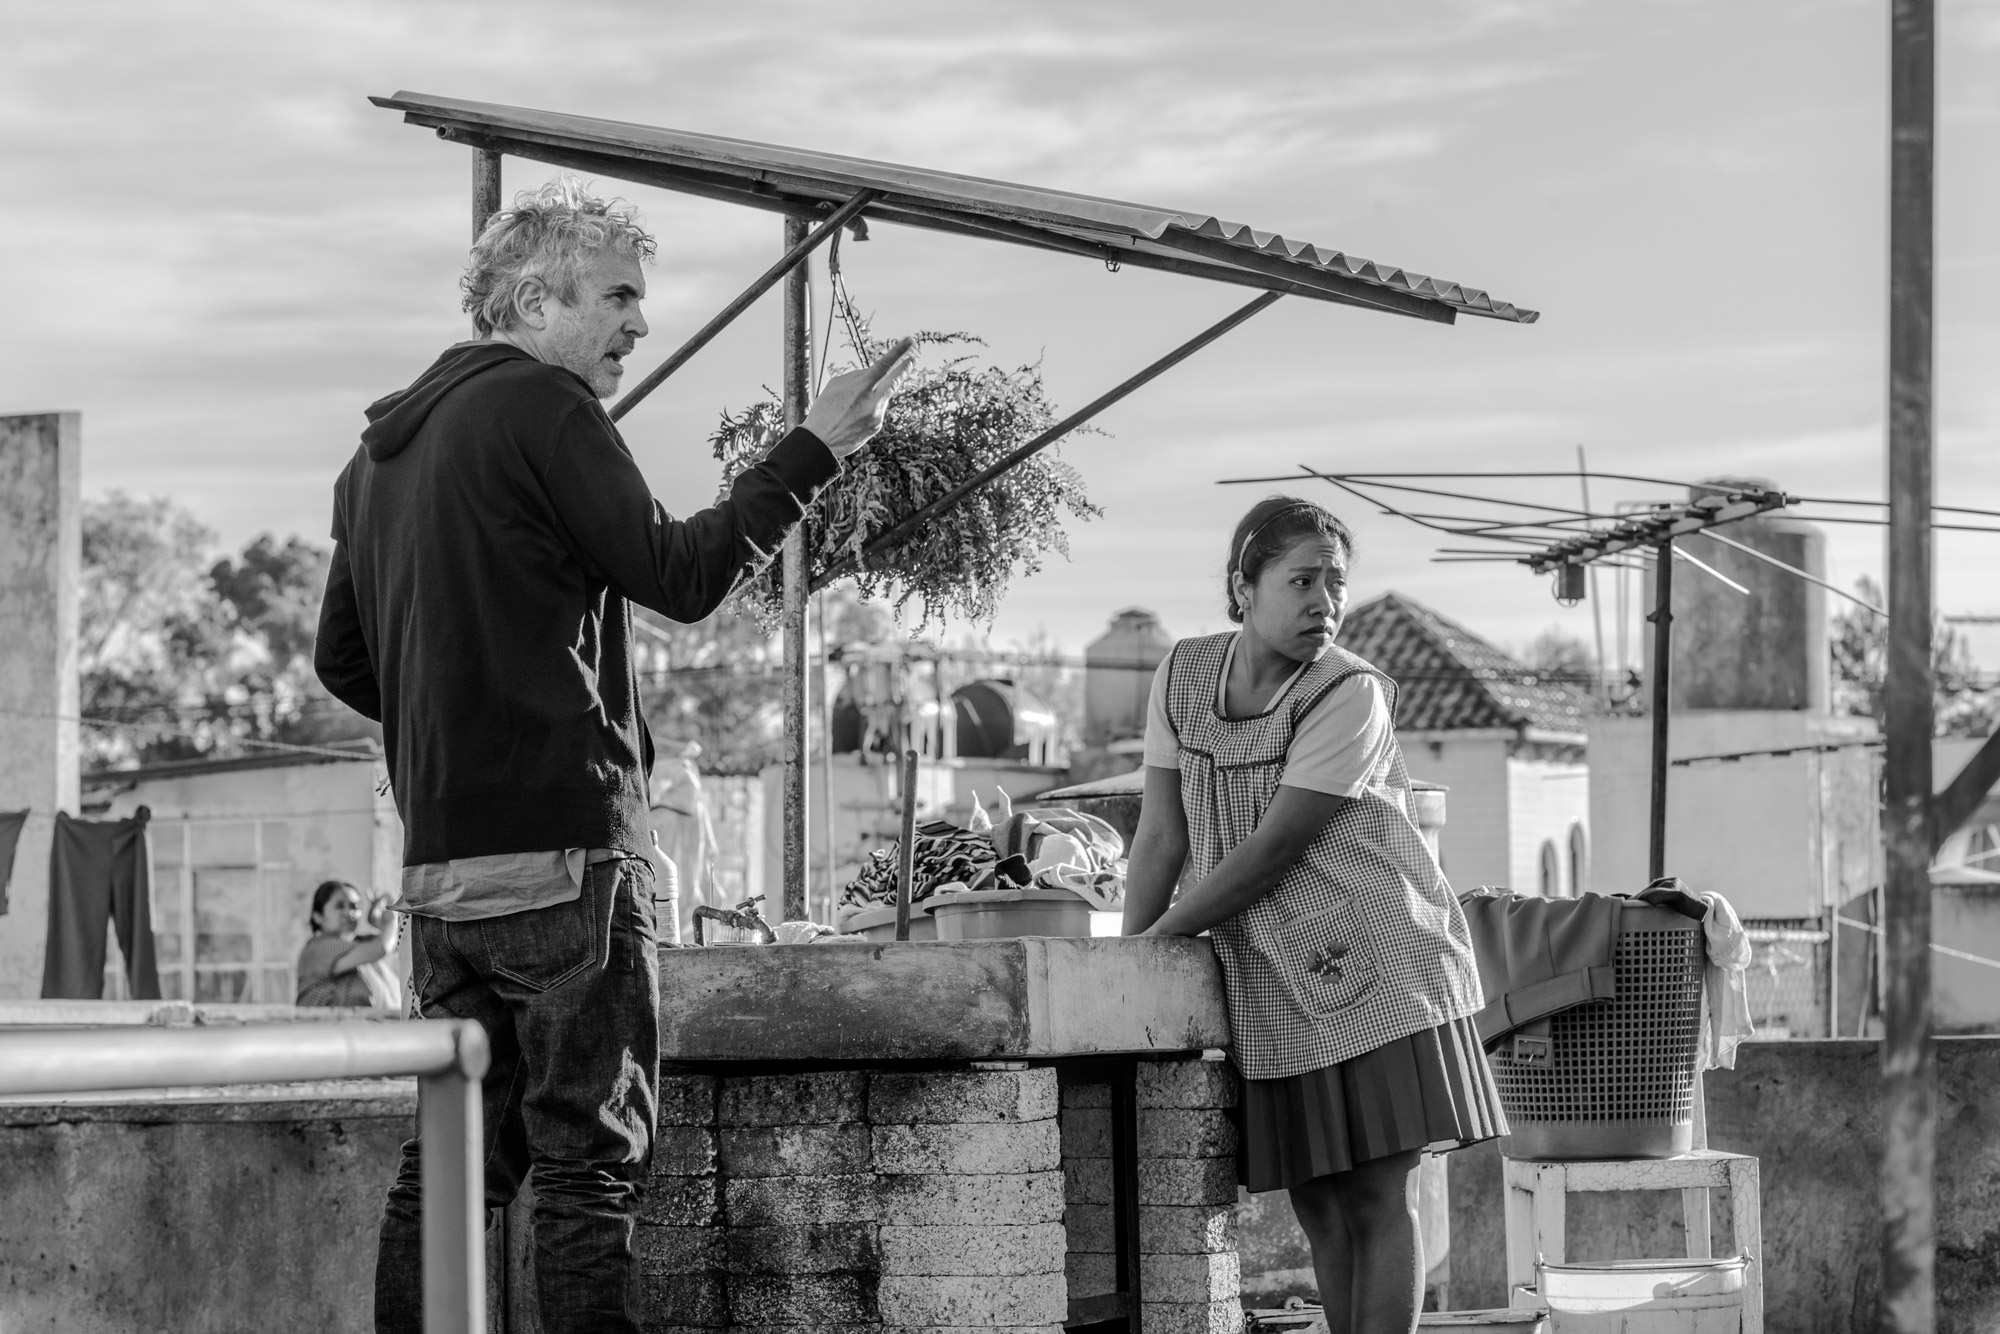 Light stories: Roma, by Alfonso Cuarón